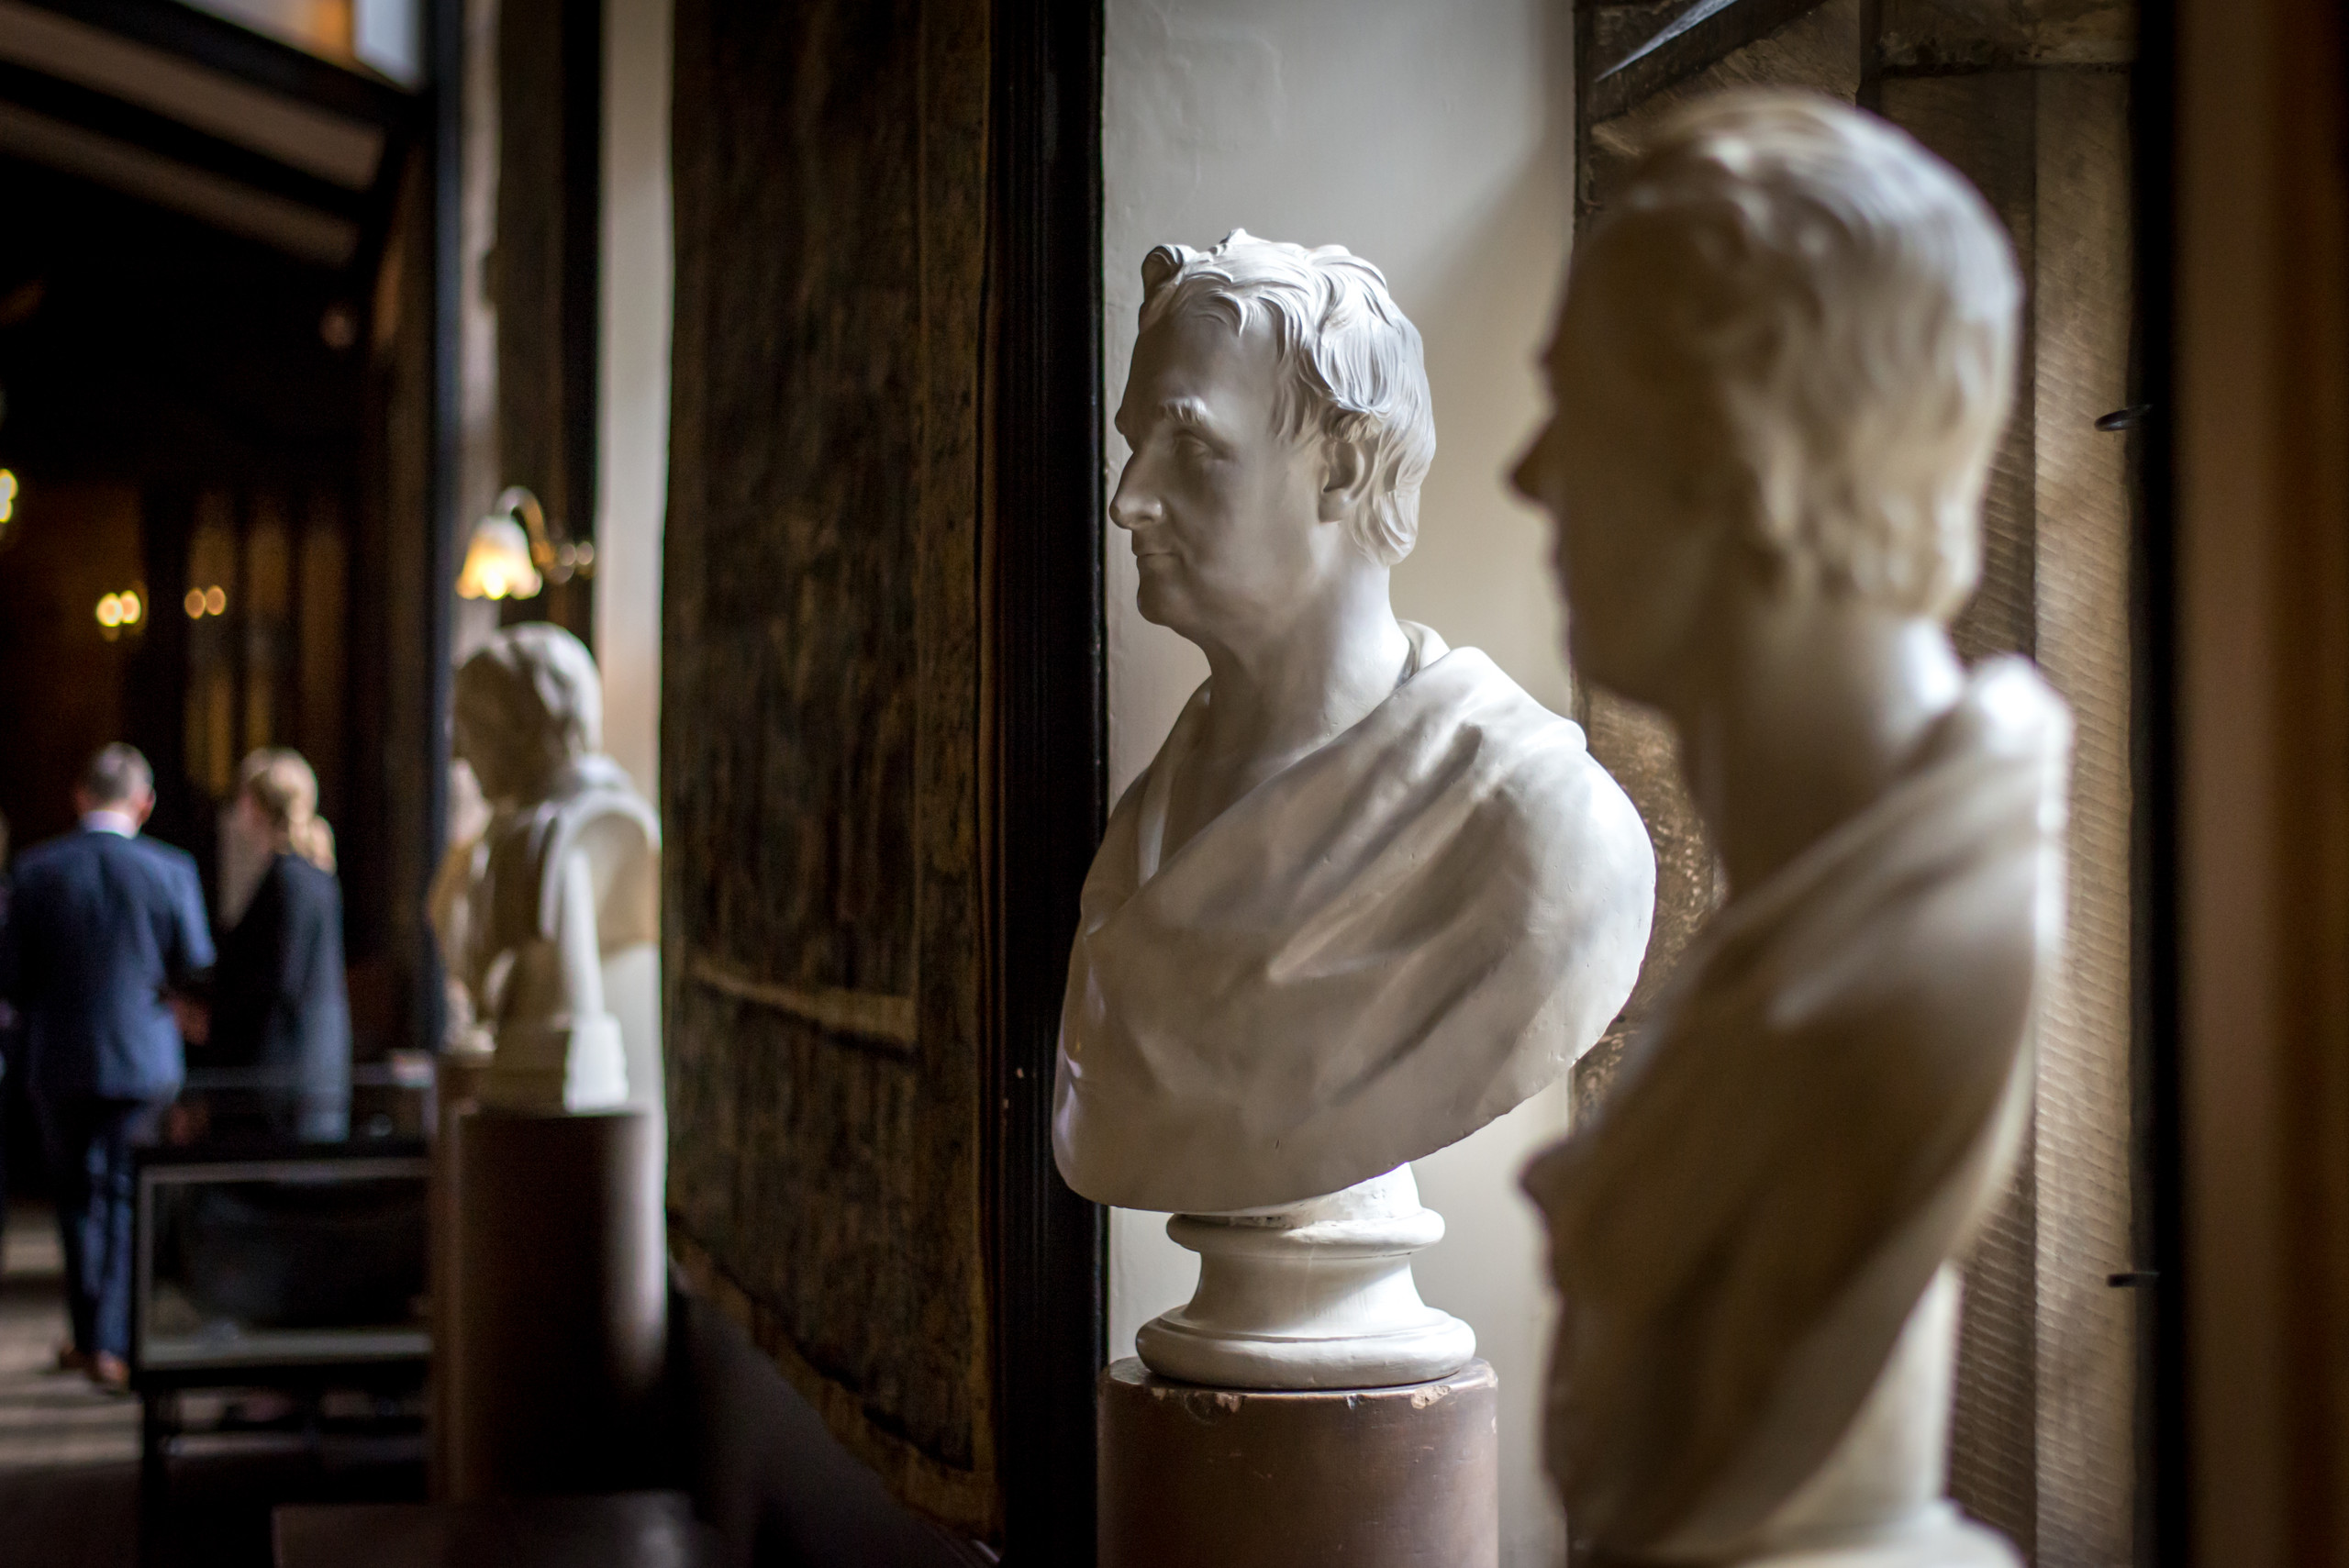 Marble art sculpture or alabaster busts in corridor of historic Durham Castle in England